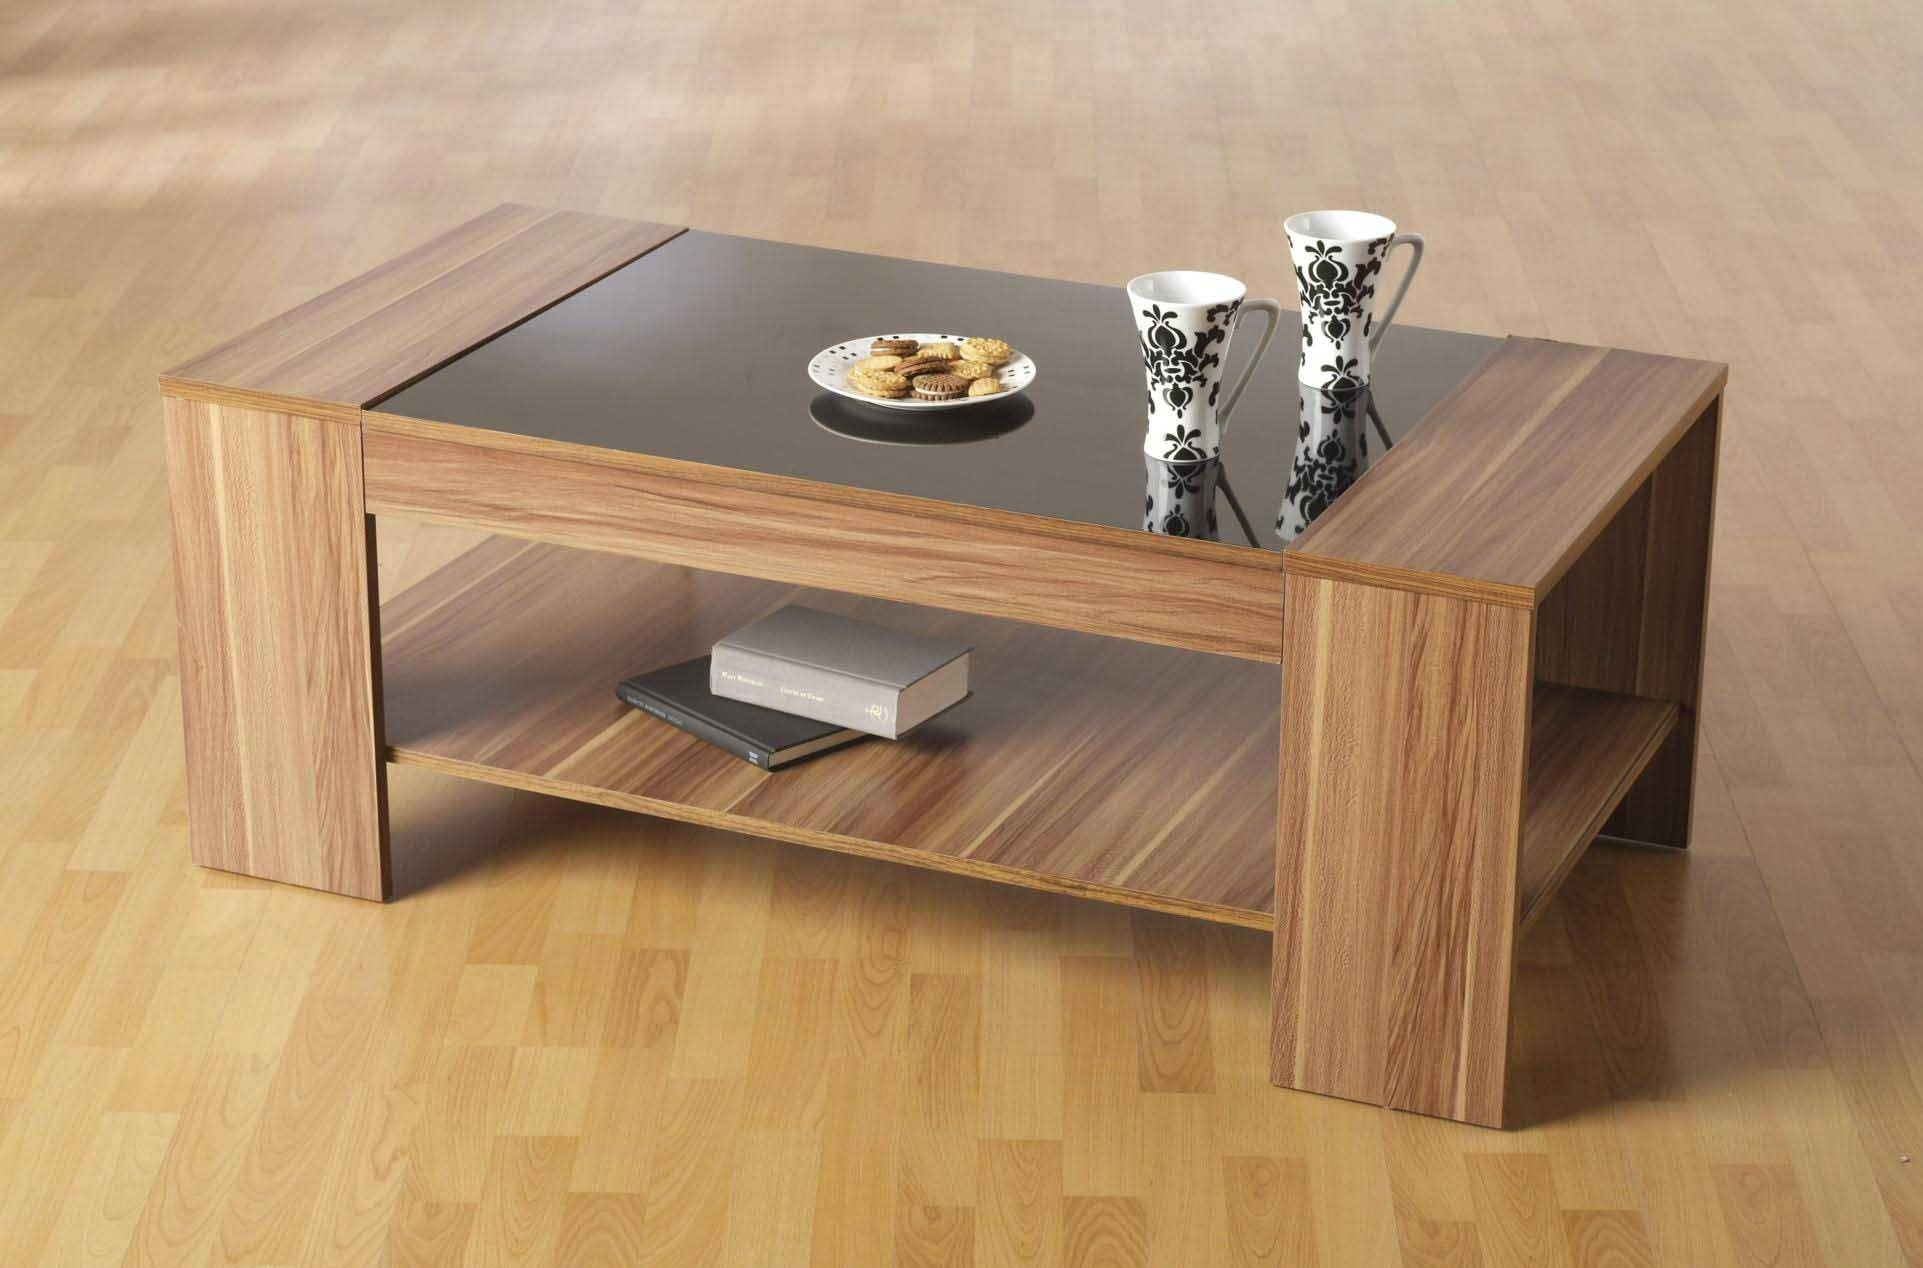 Coffee Tables Ideas: Wood Coffee Table With Glass Top Uk Small With Regard To Small Wood Coffee Tables (View 12 of 30)